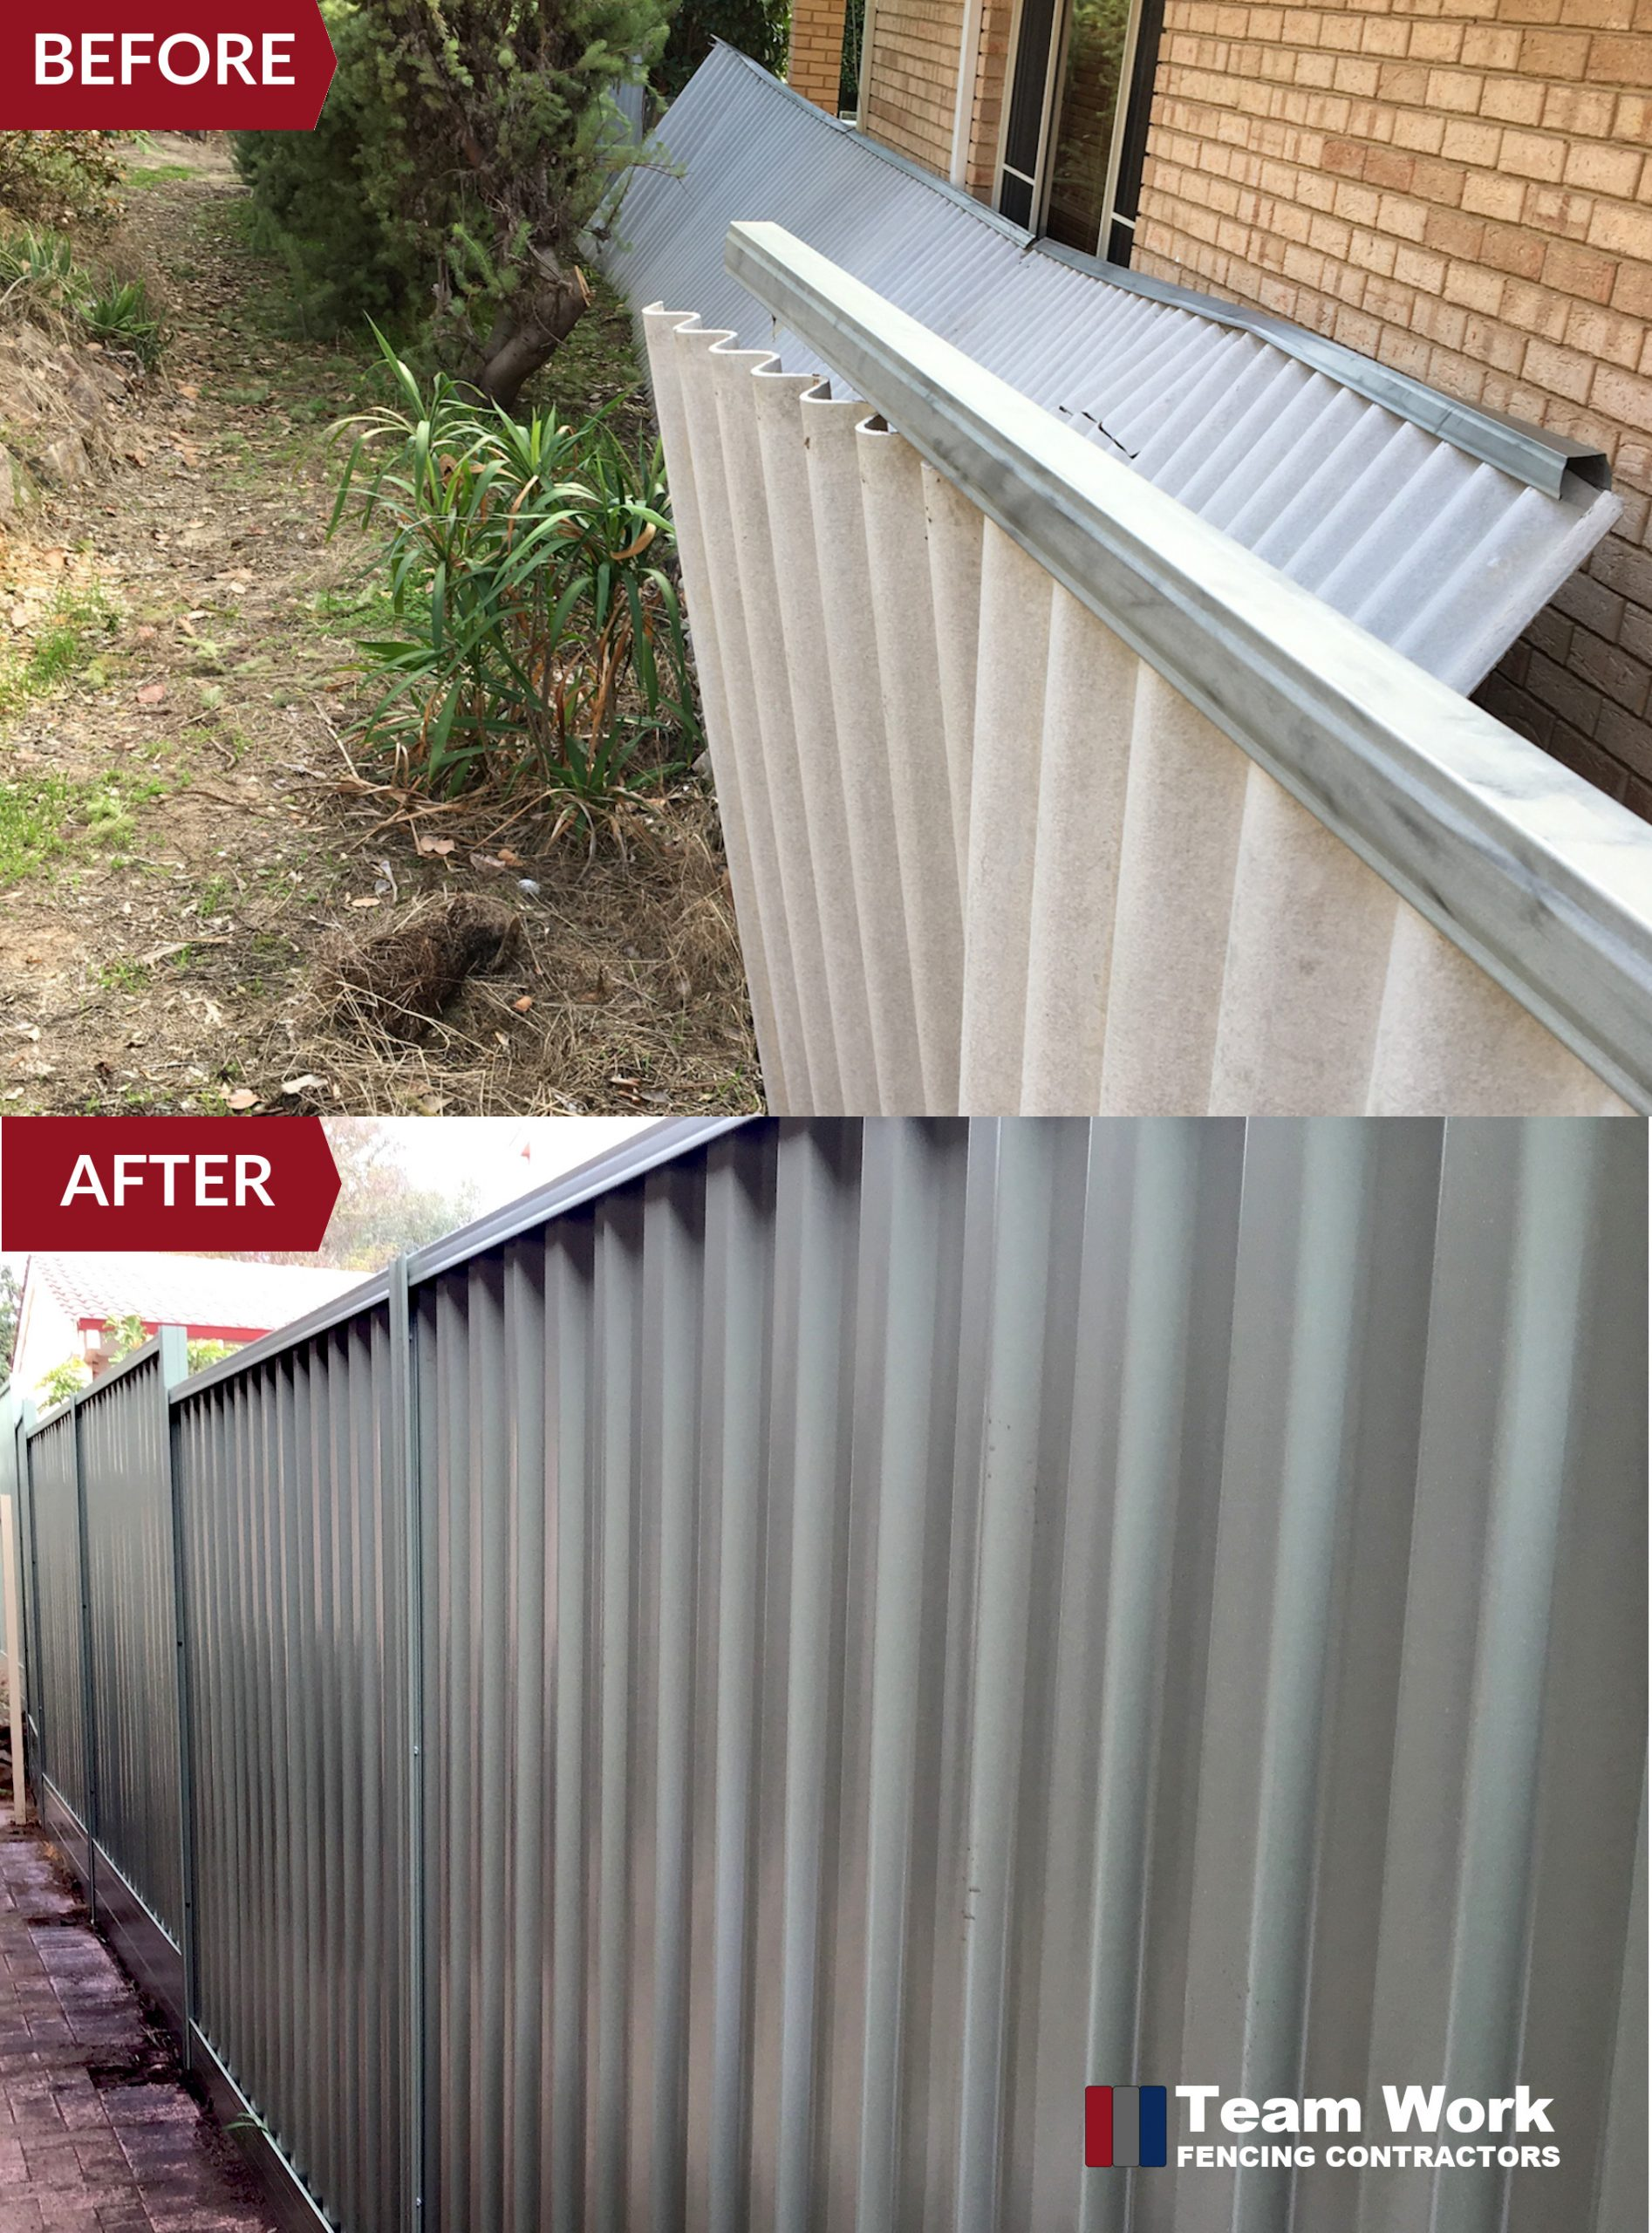 Before After Photo - Colorbond Fence Installation Nedlands WA